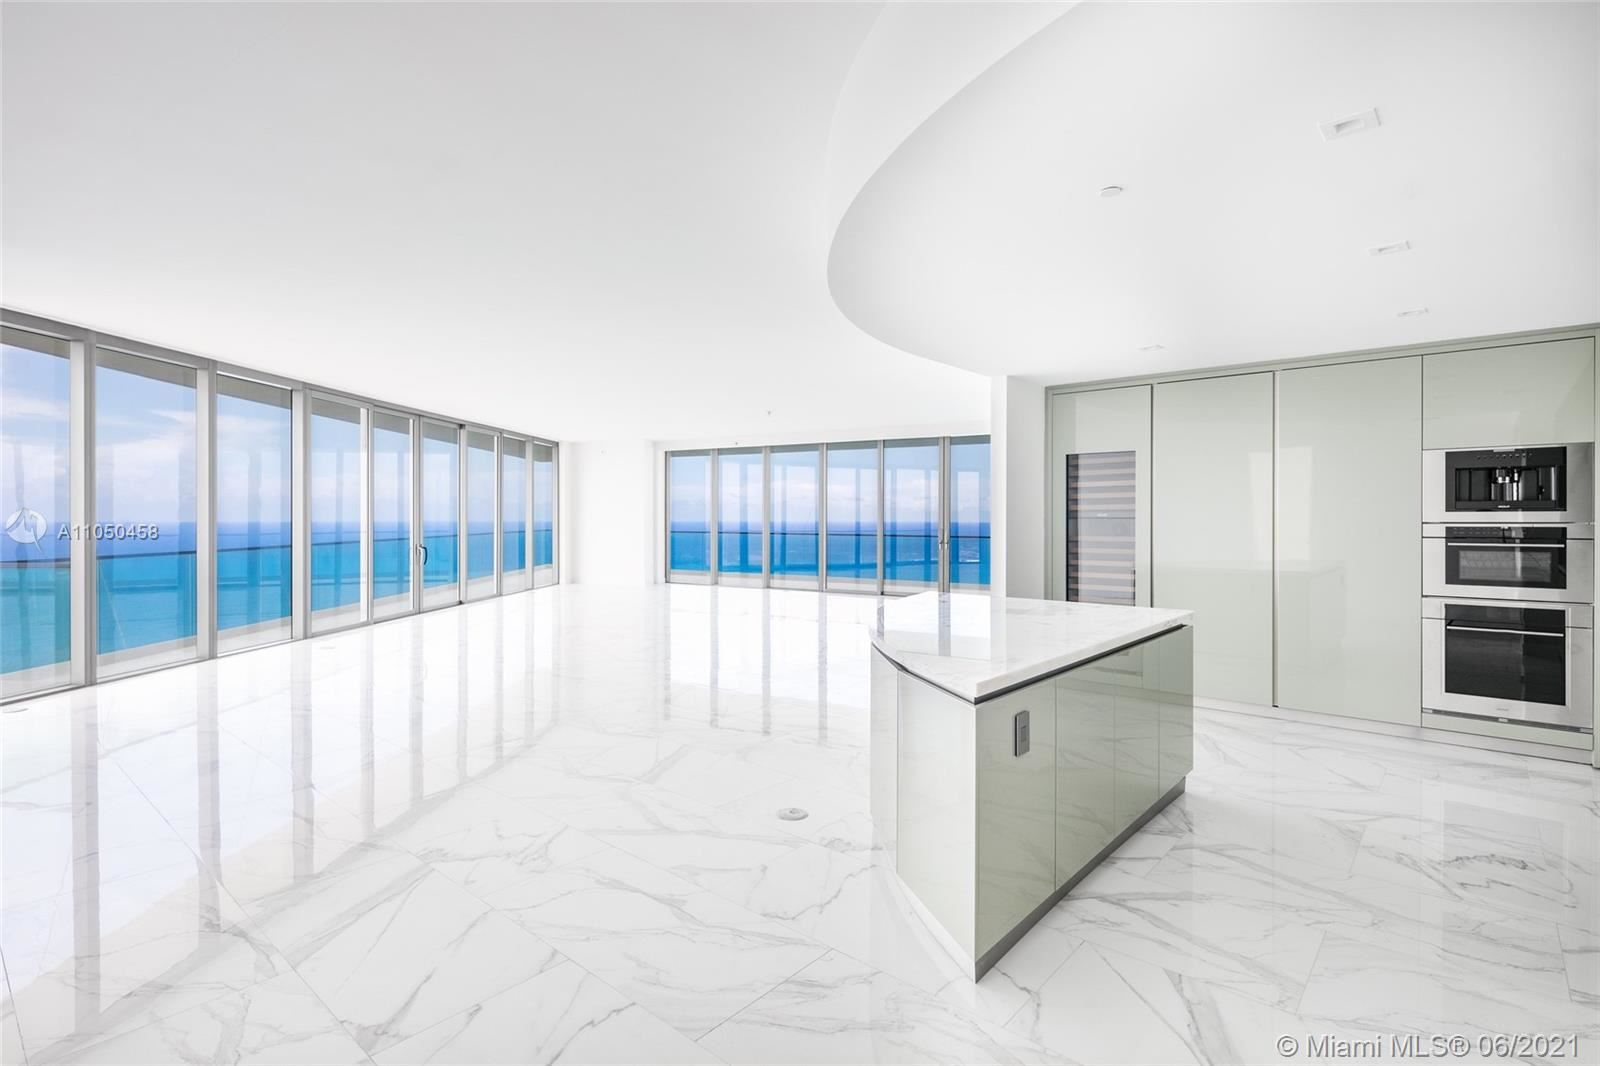 18975 Collins Ave #5100, Sunny Isles, FL 33160 - #: A11050458